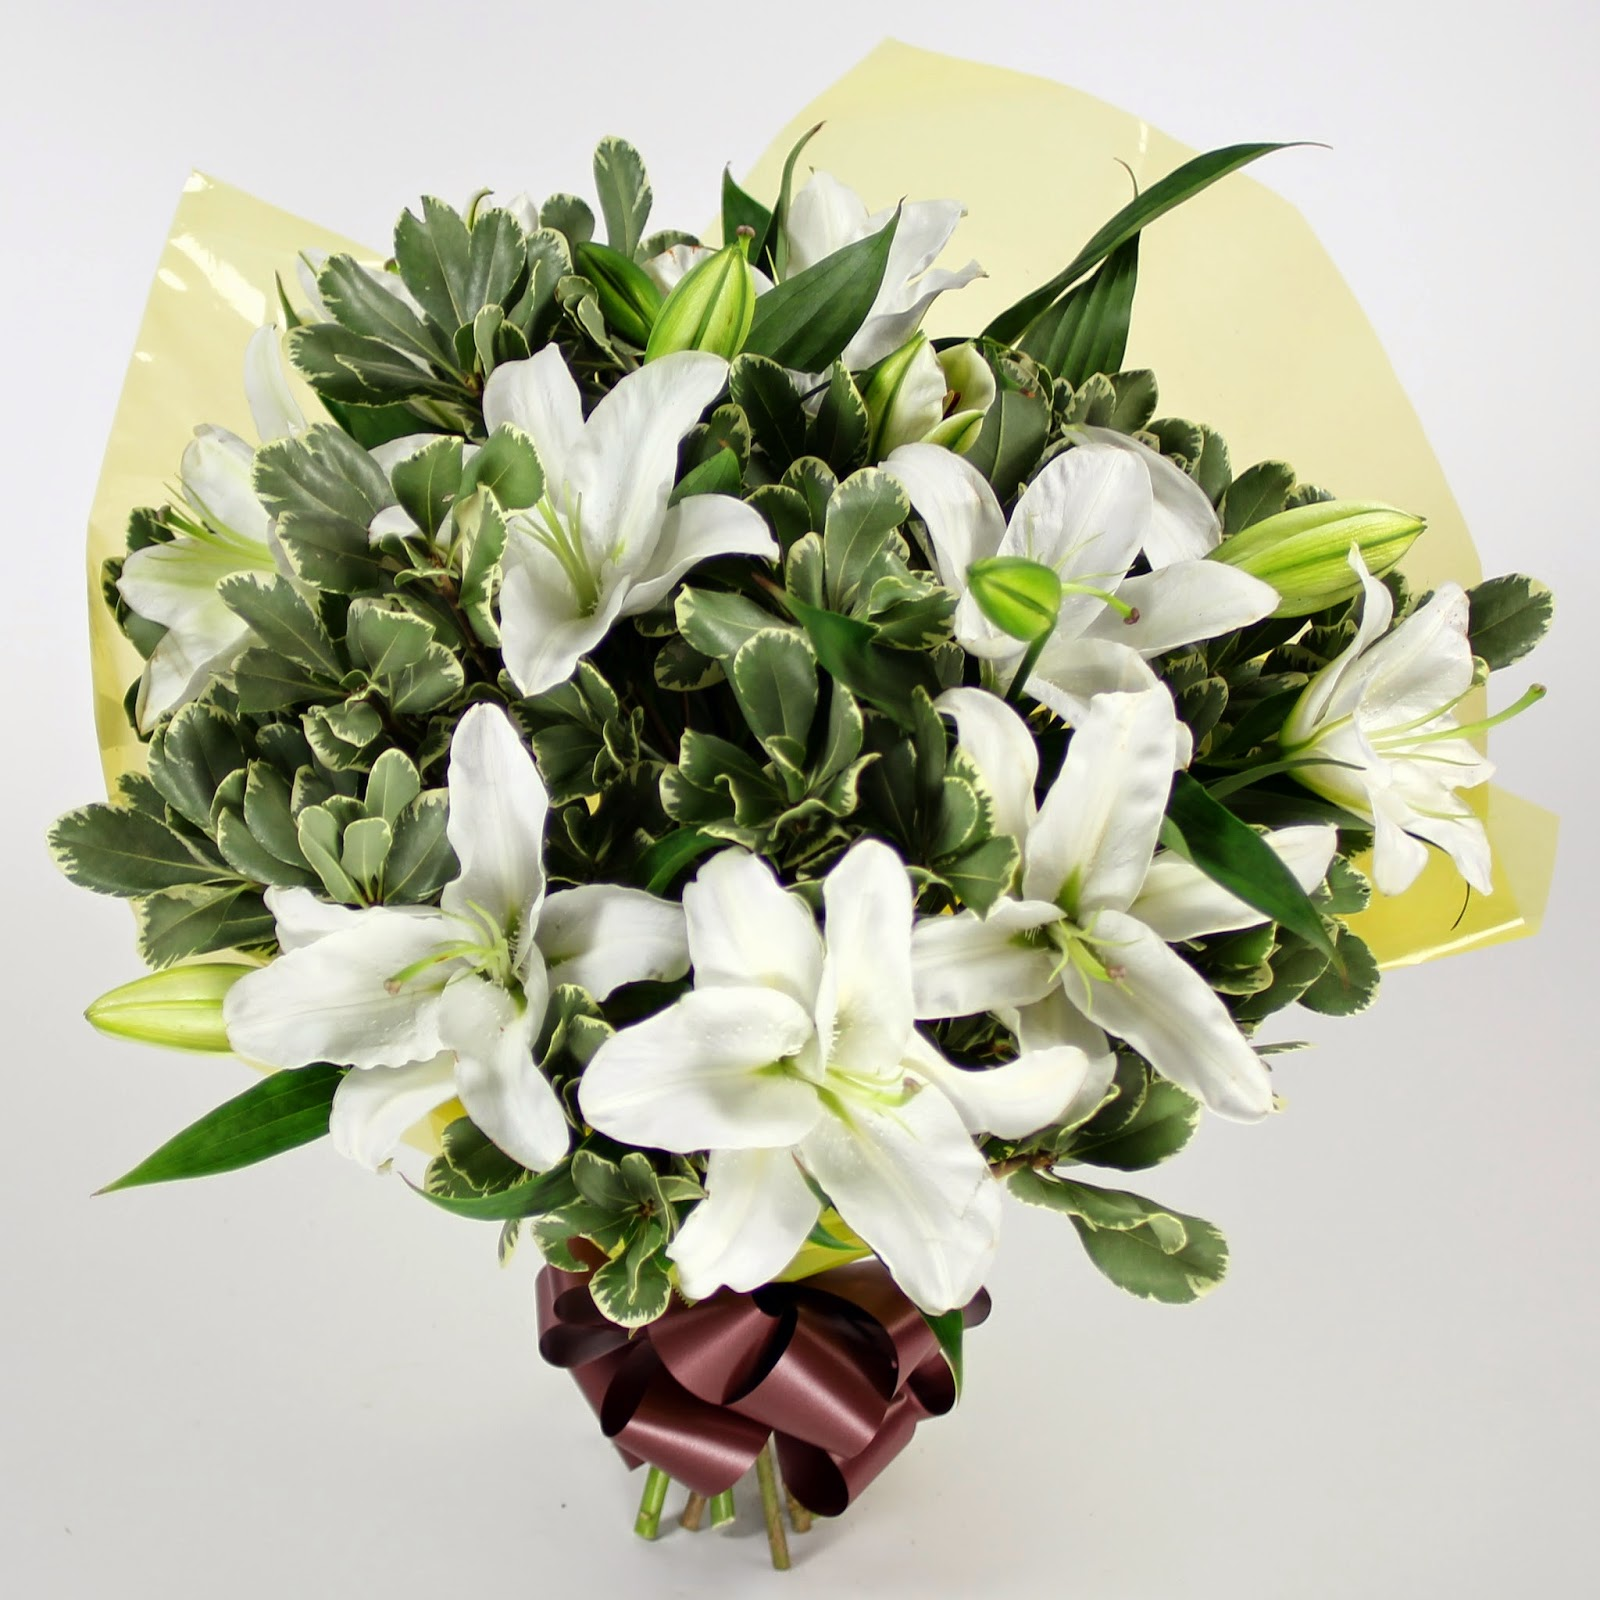 Flower delivery online deals we coupon clip best online flower delivery fromyouflowers izmirmasajfo